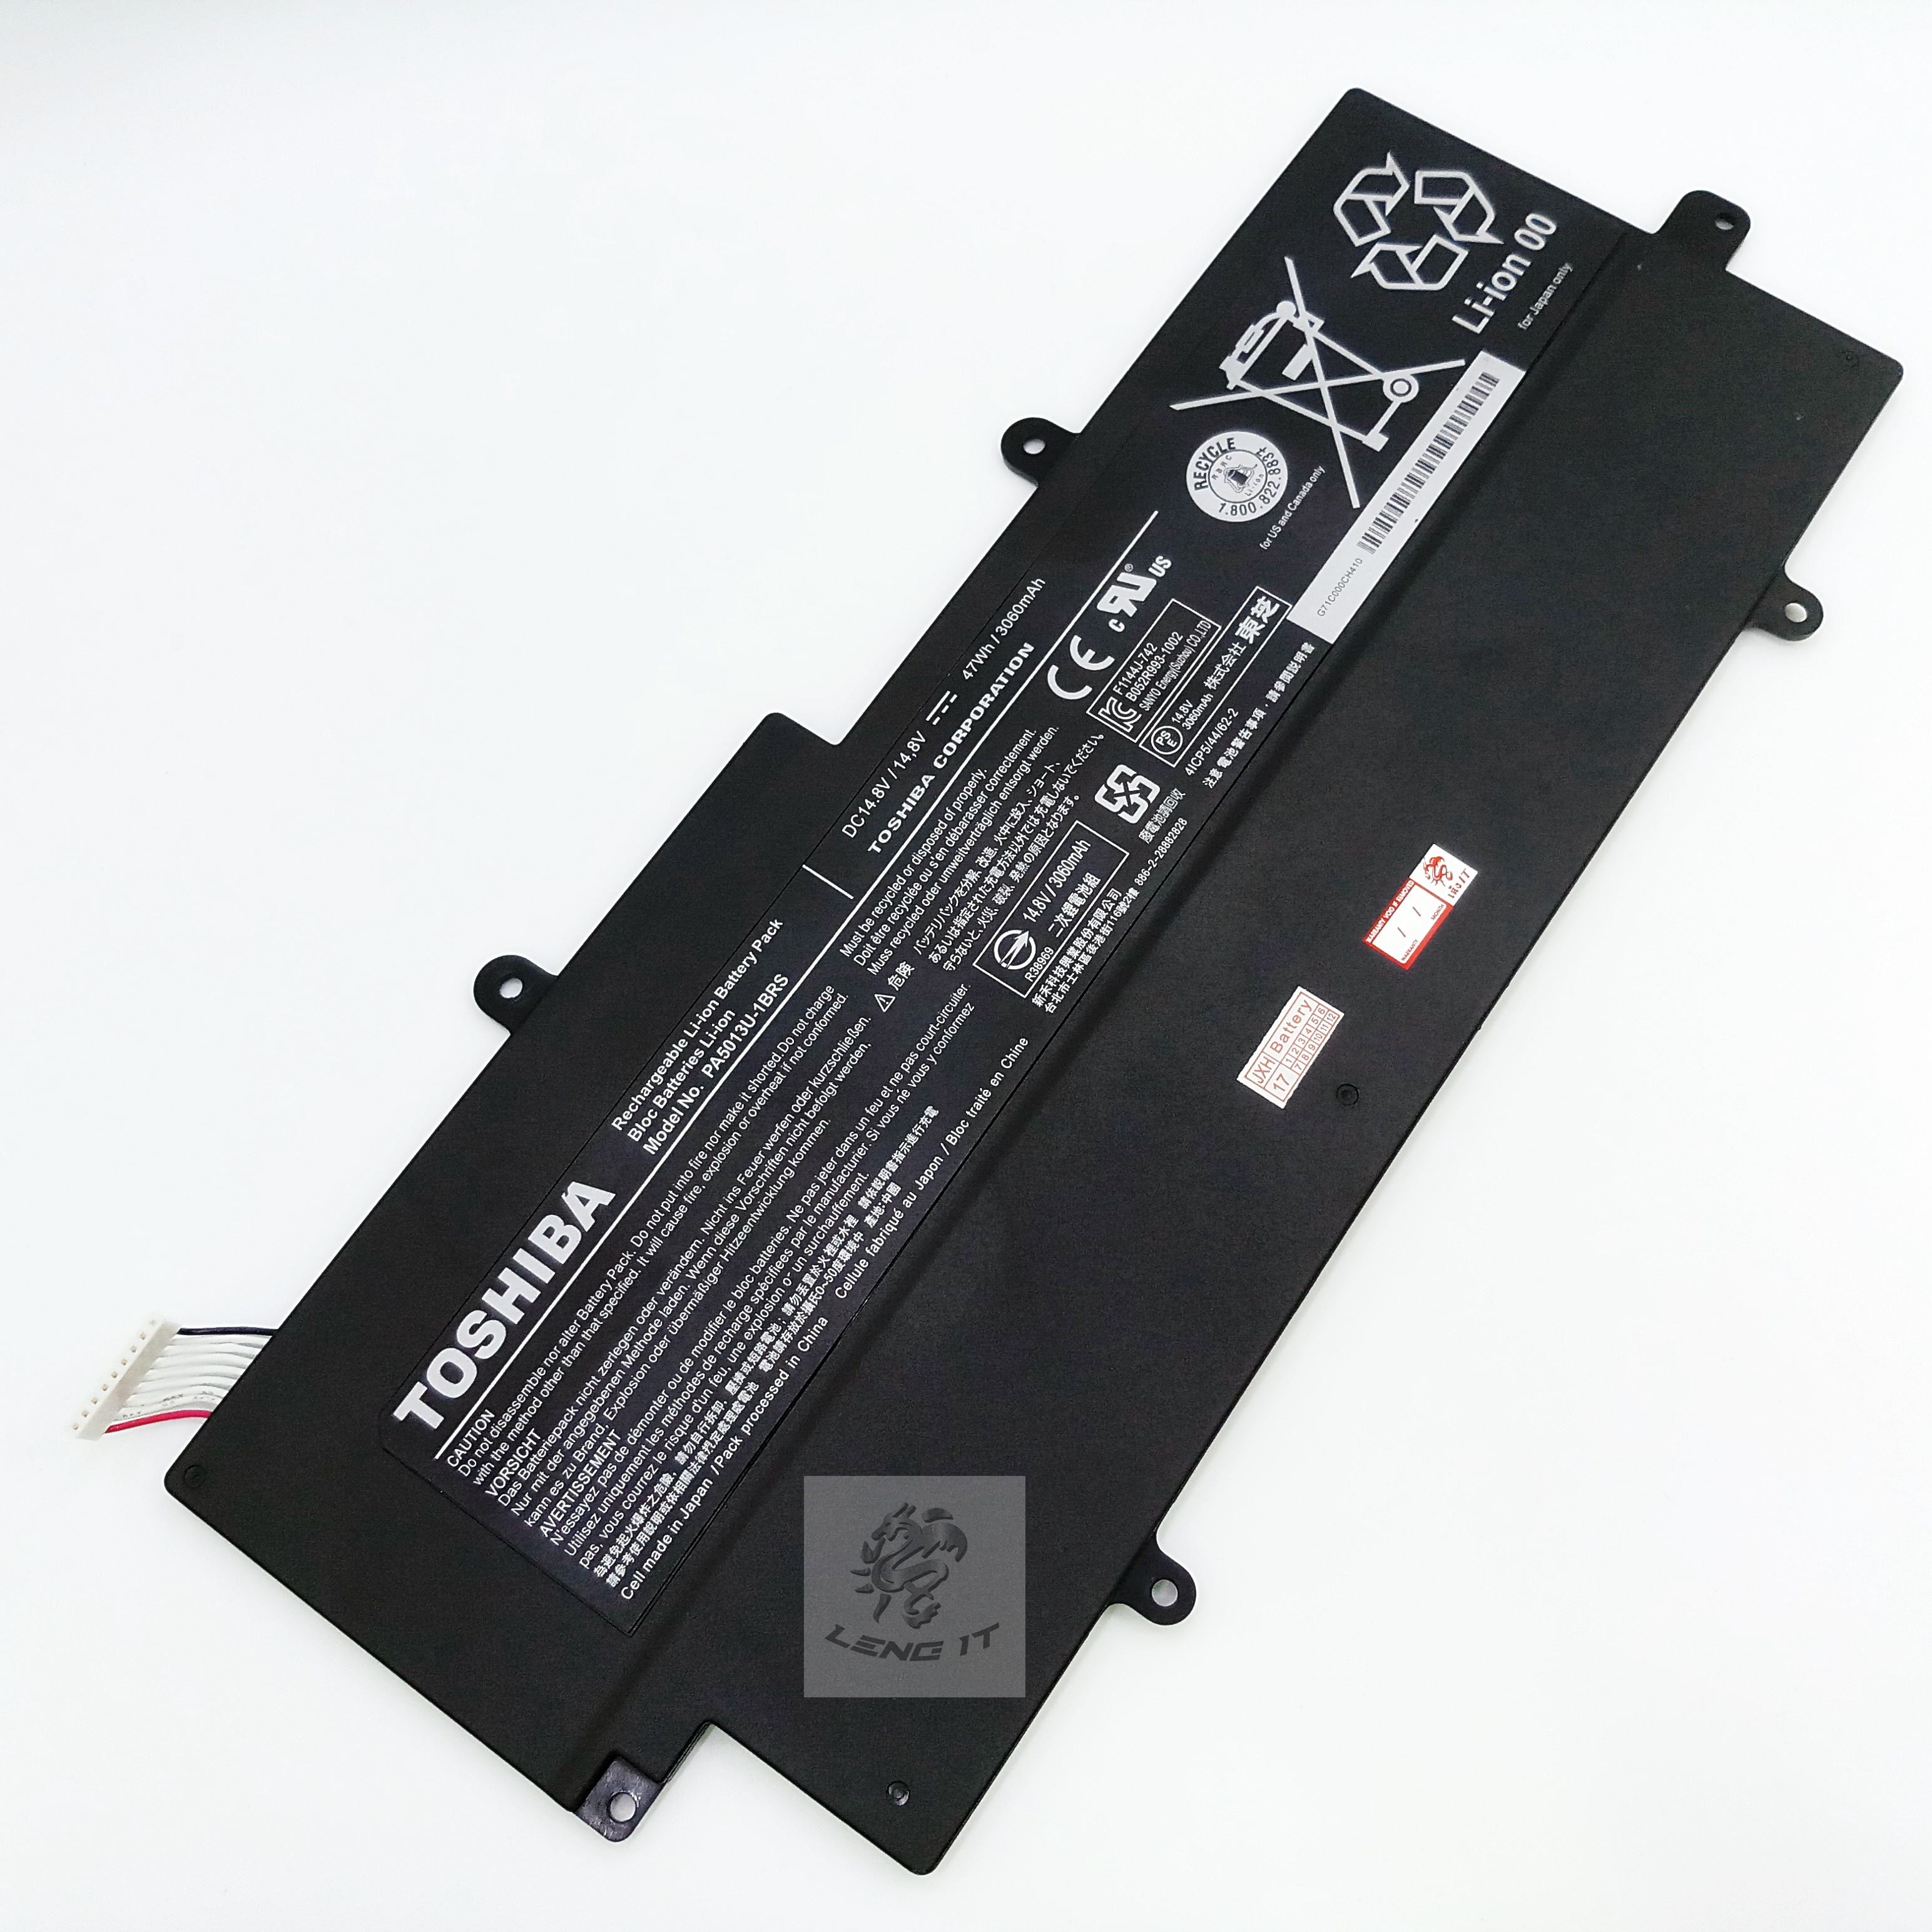 Battery Toshiba Z830 (PA5013U)